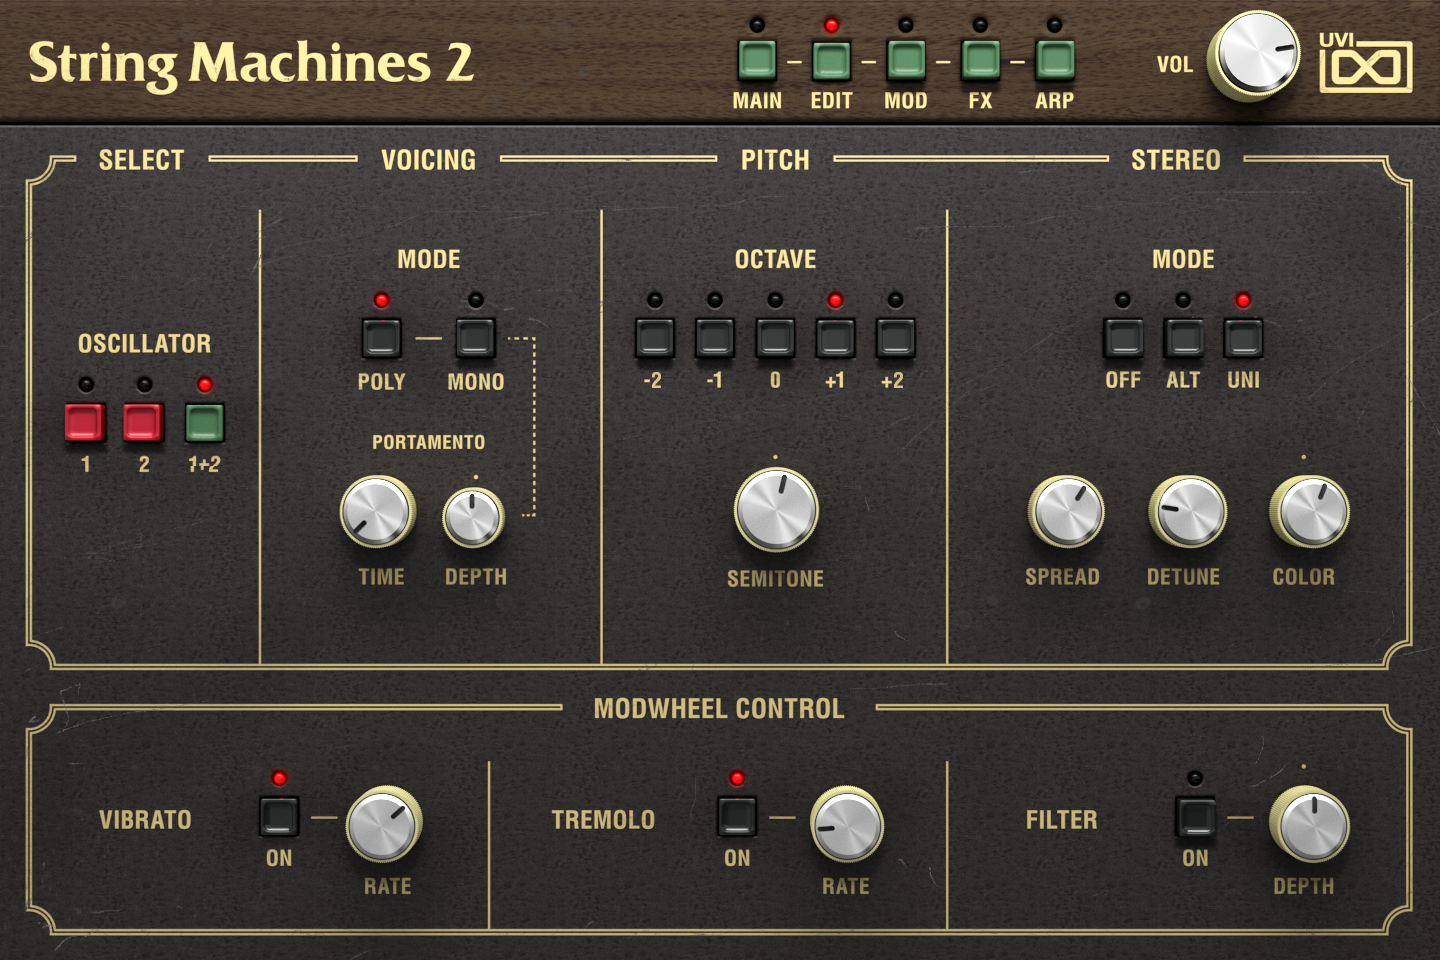 String Machines 2 | Edit GUI